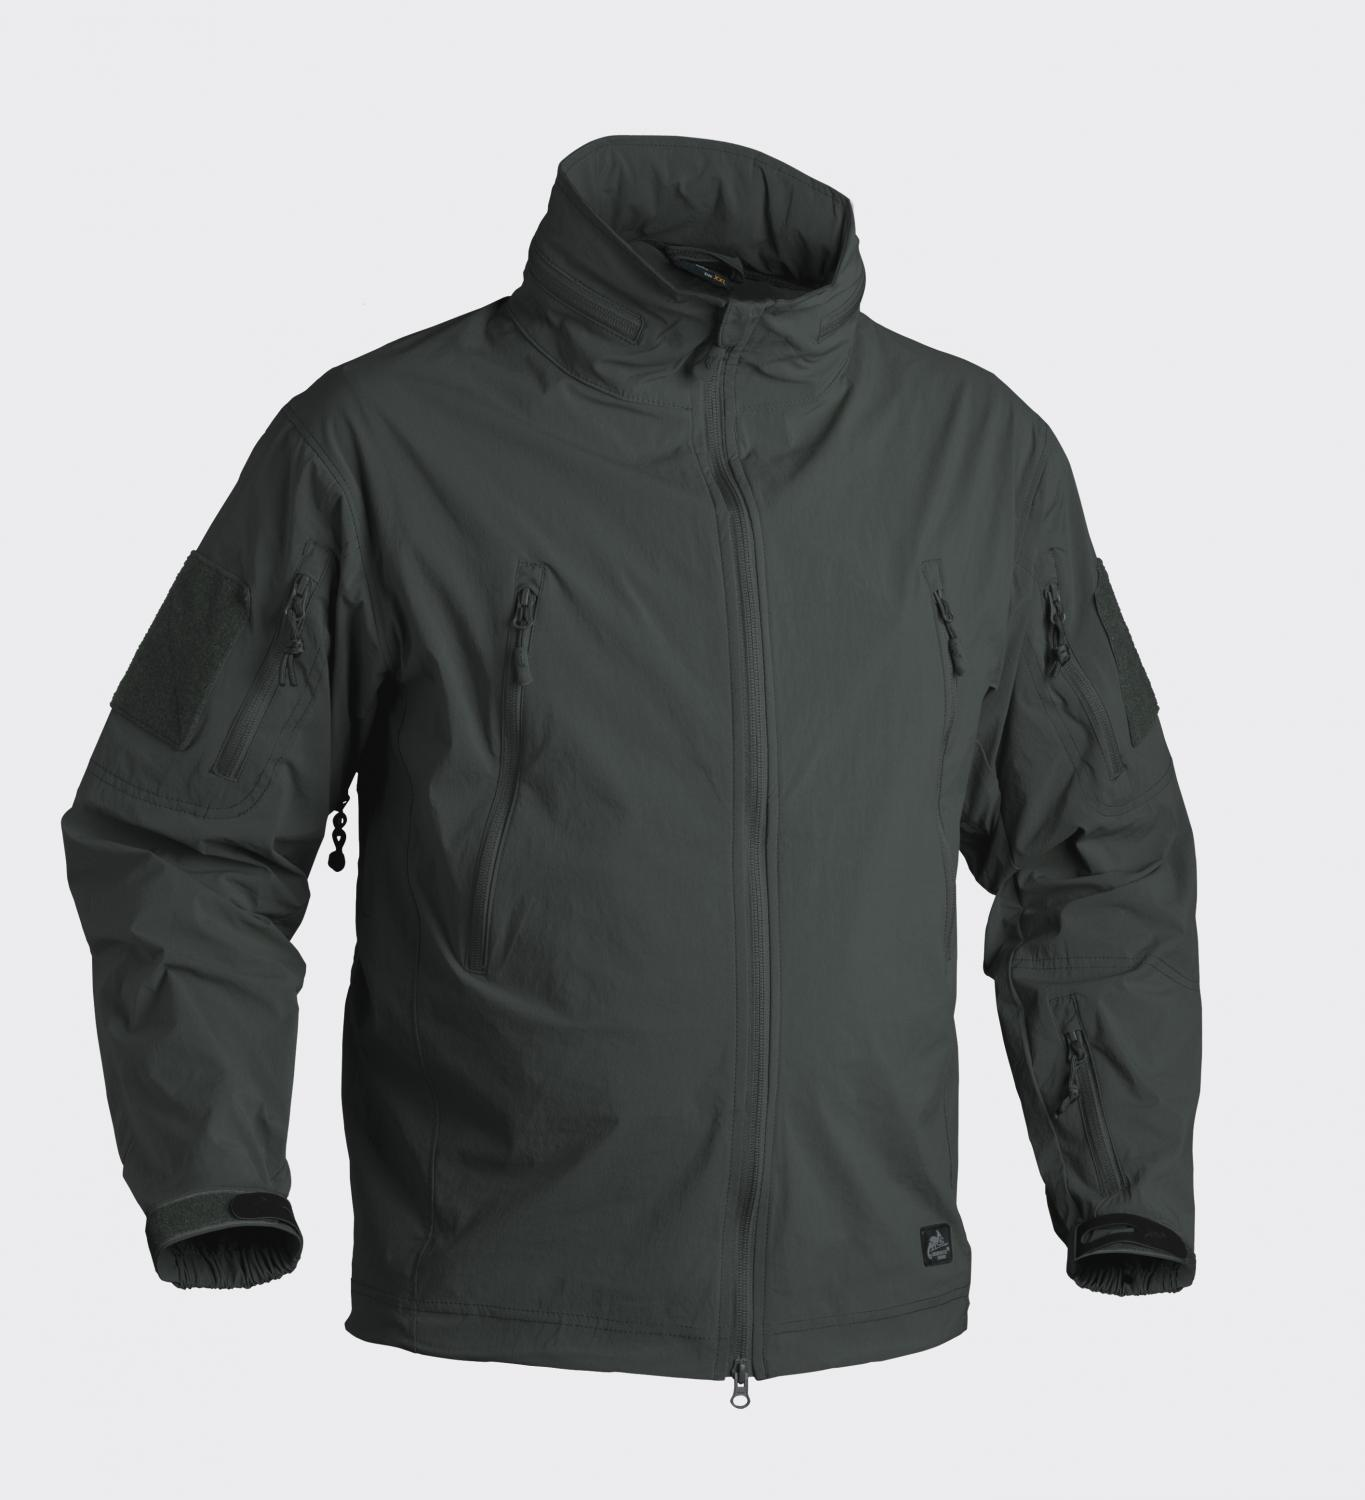 TROOPER - SoftShell Jungle Green